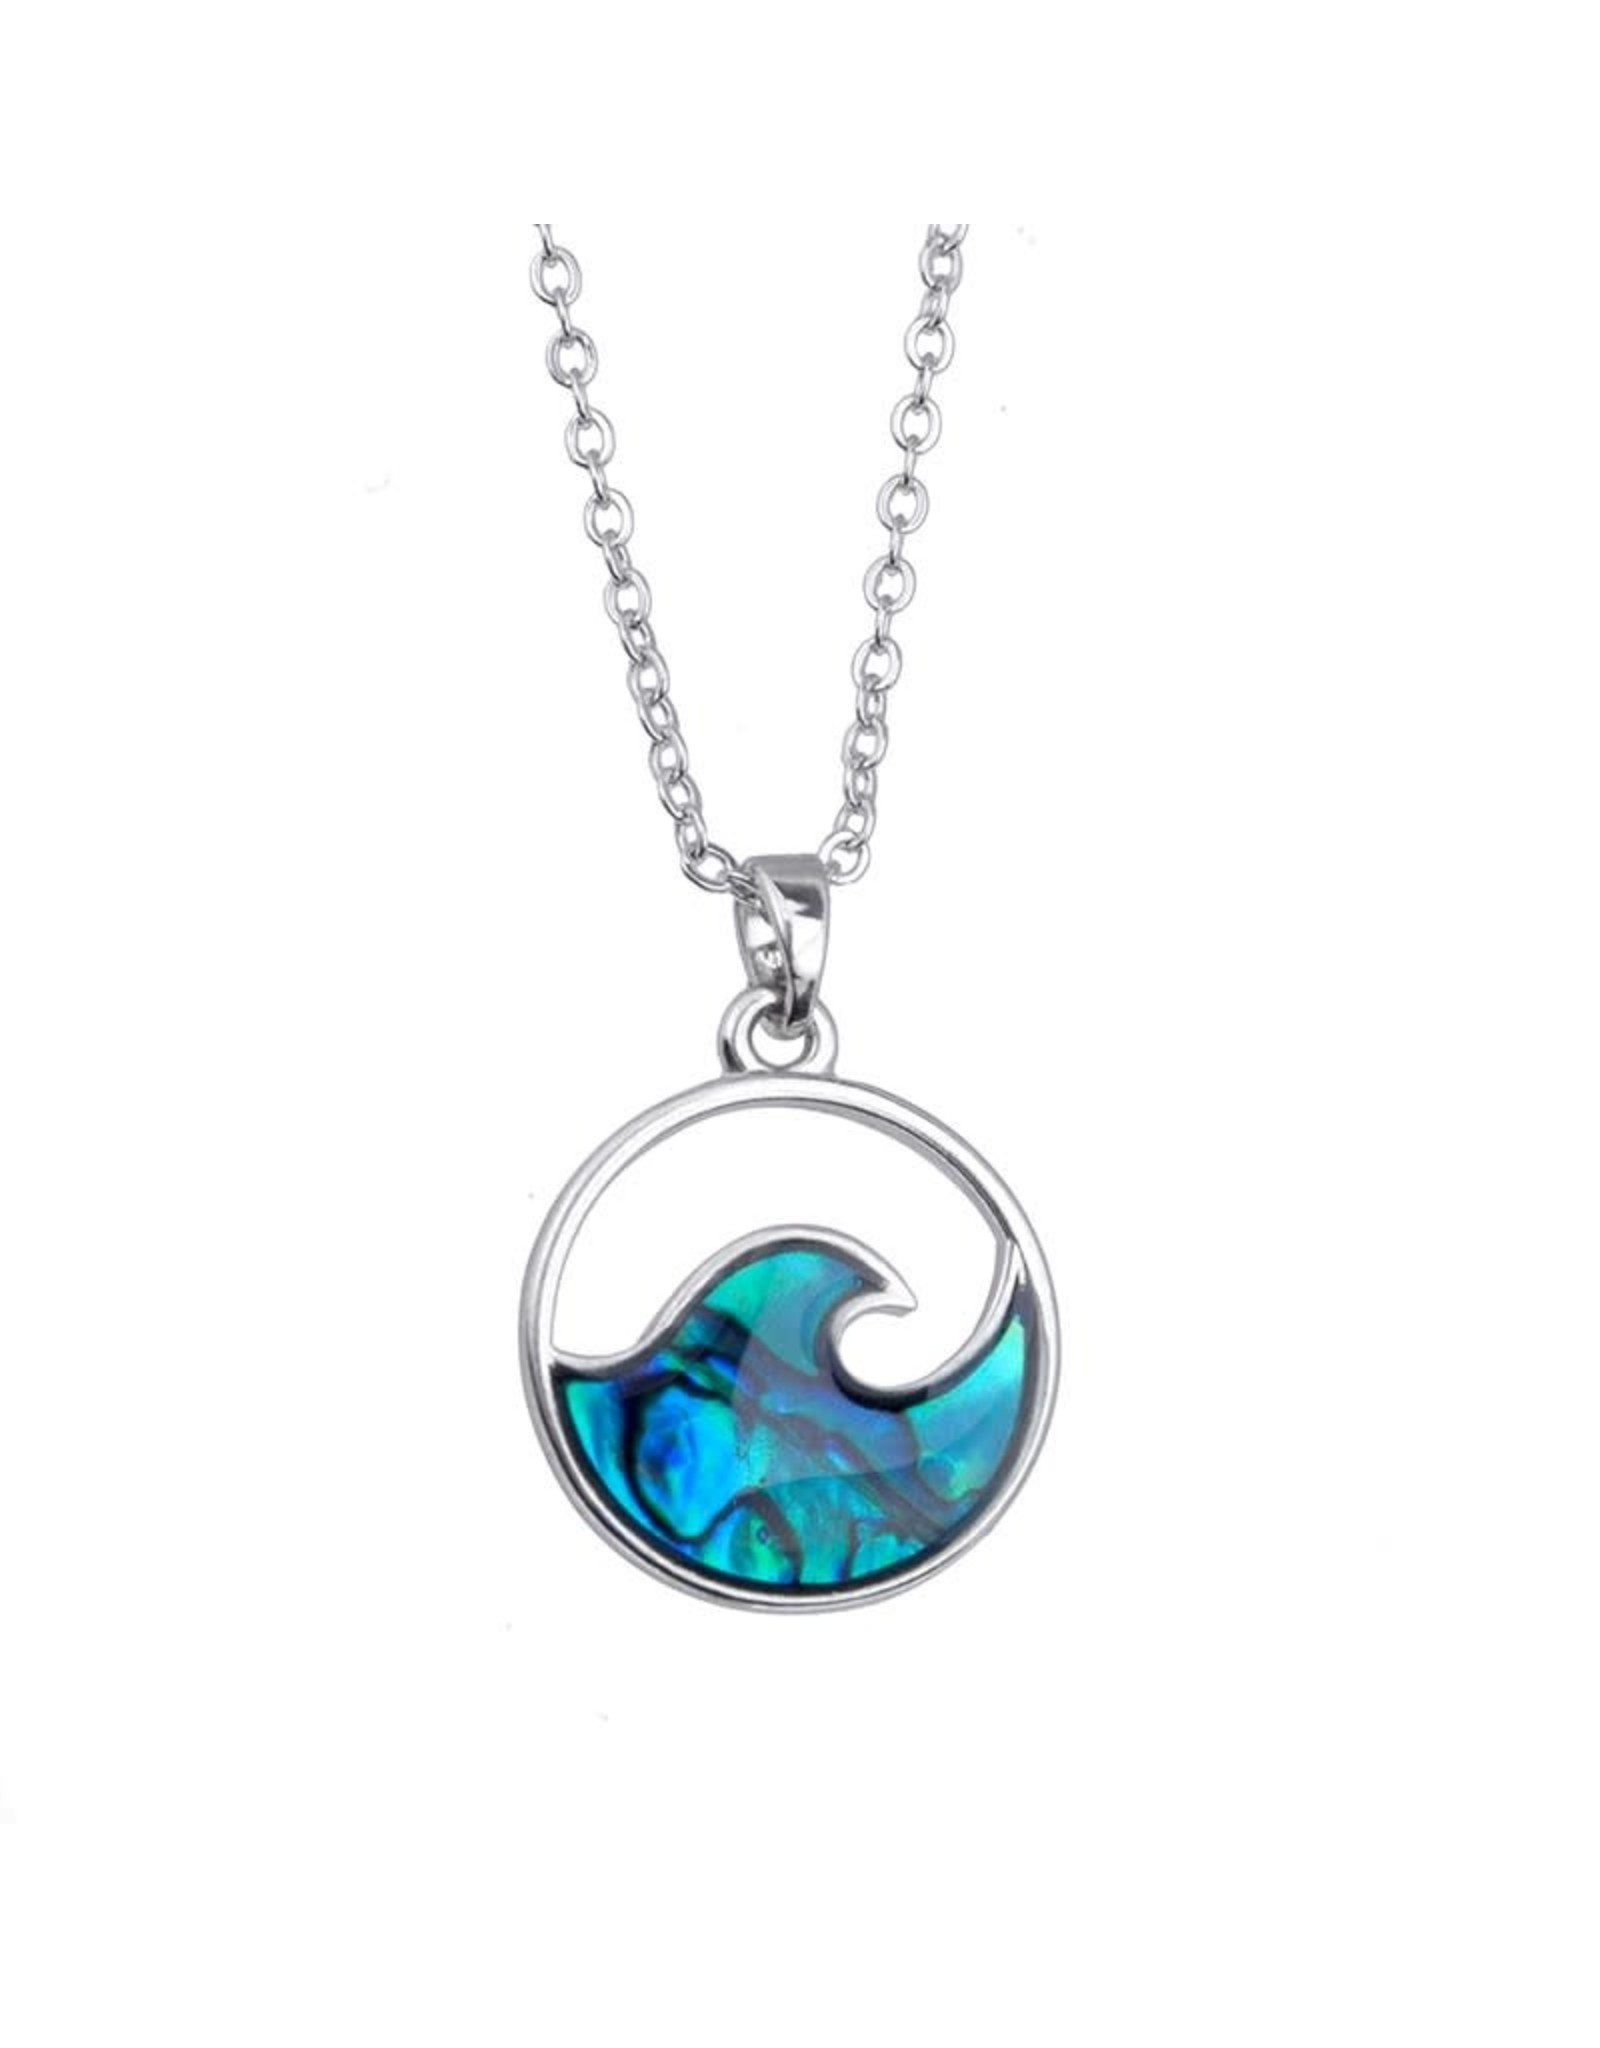 Bamboo Trading Company Single Wave Necklaces